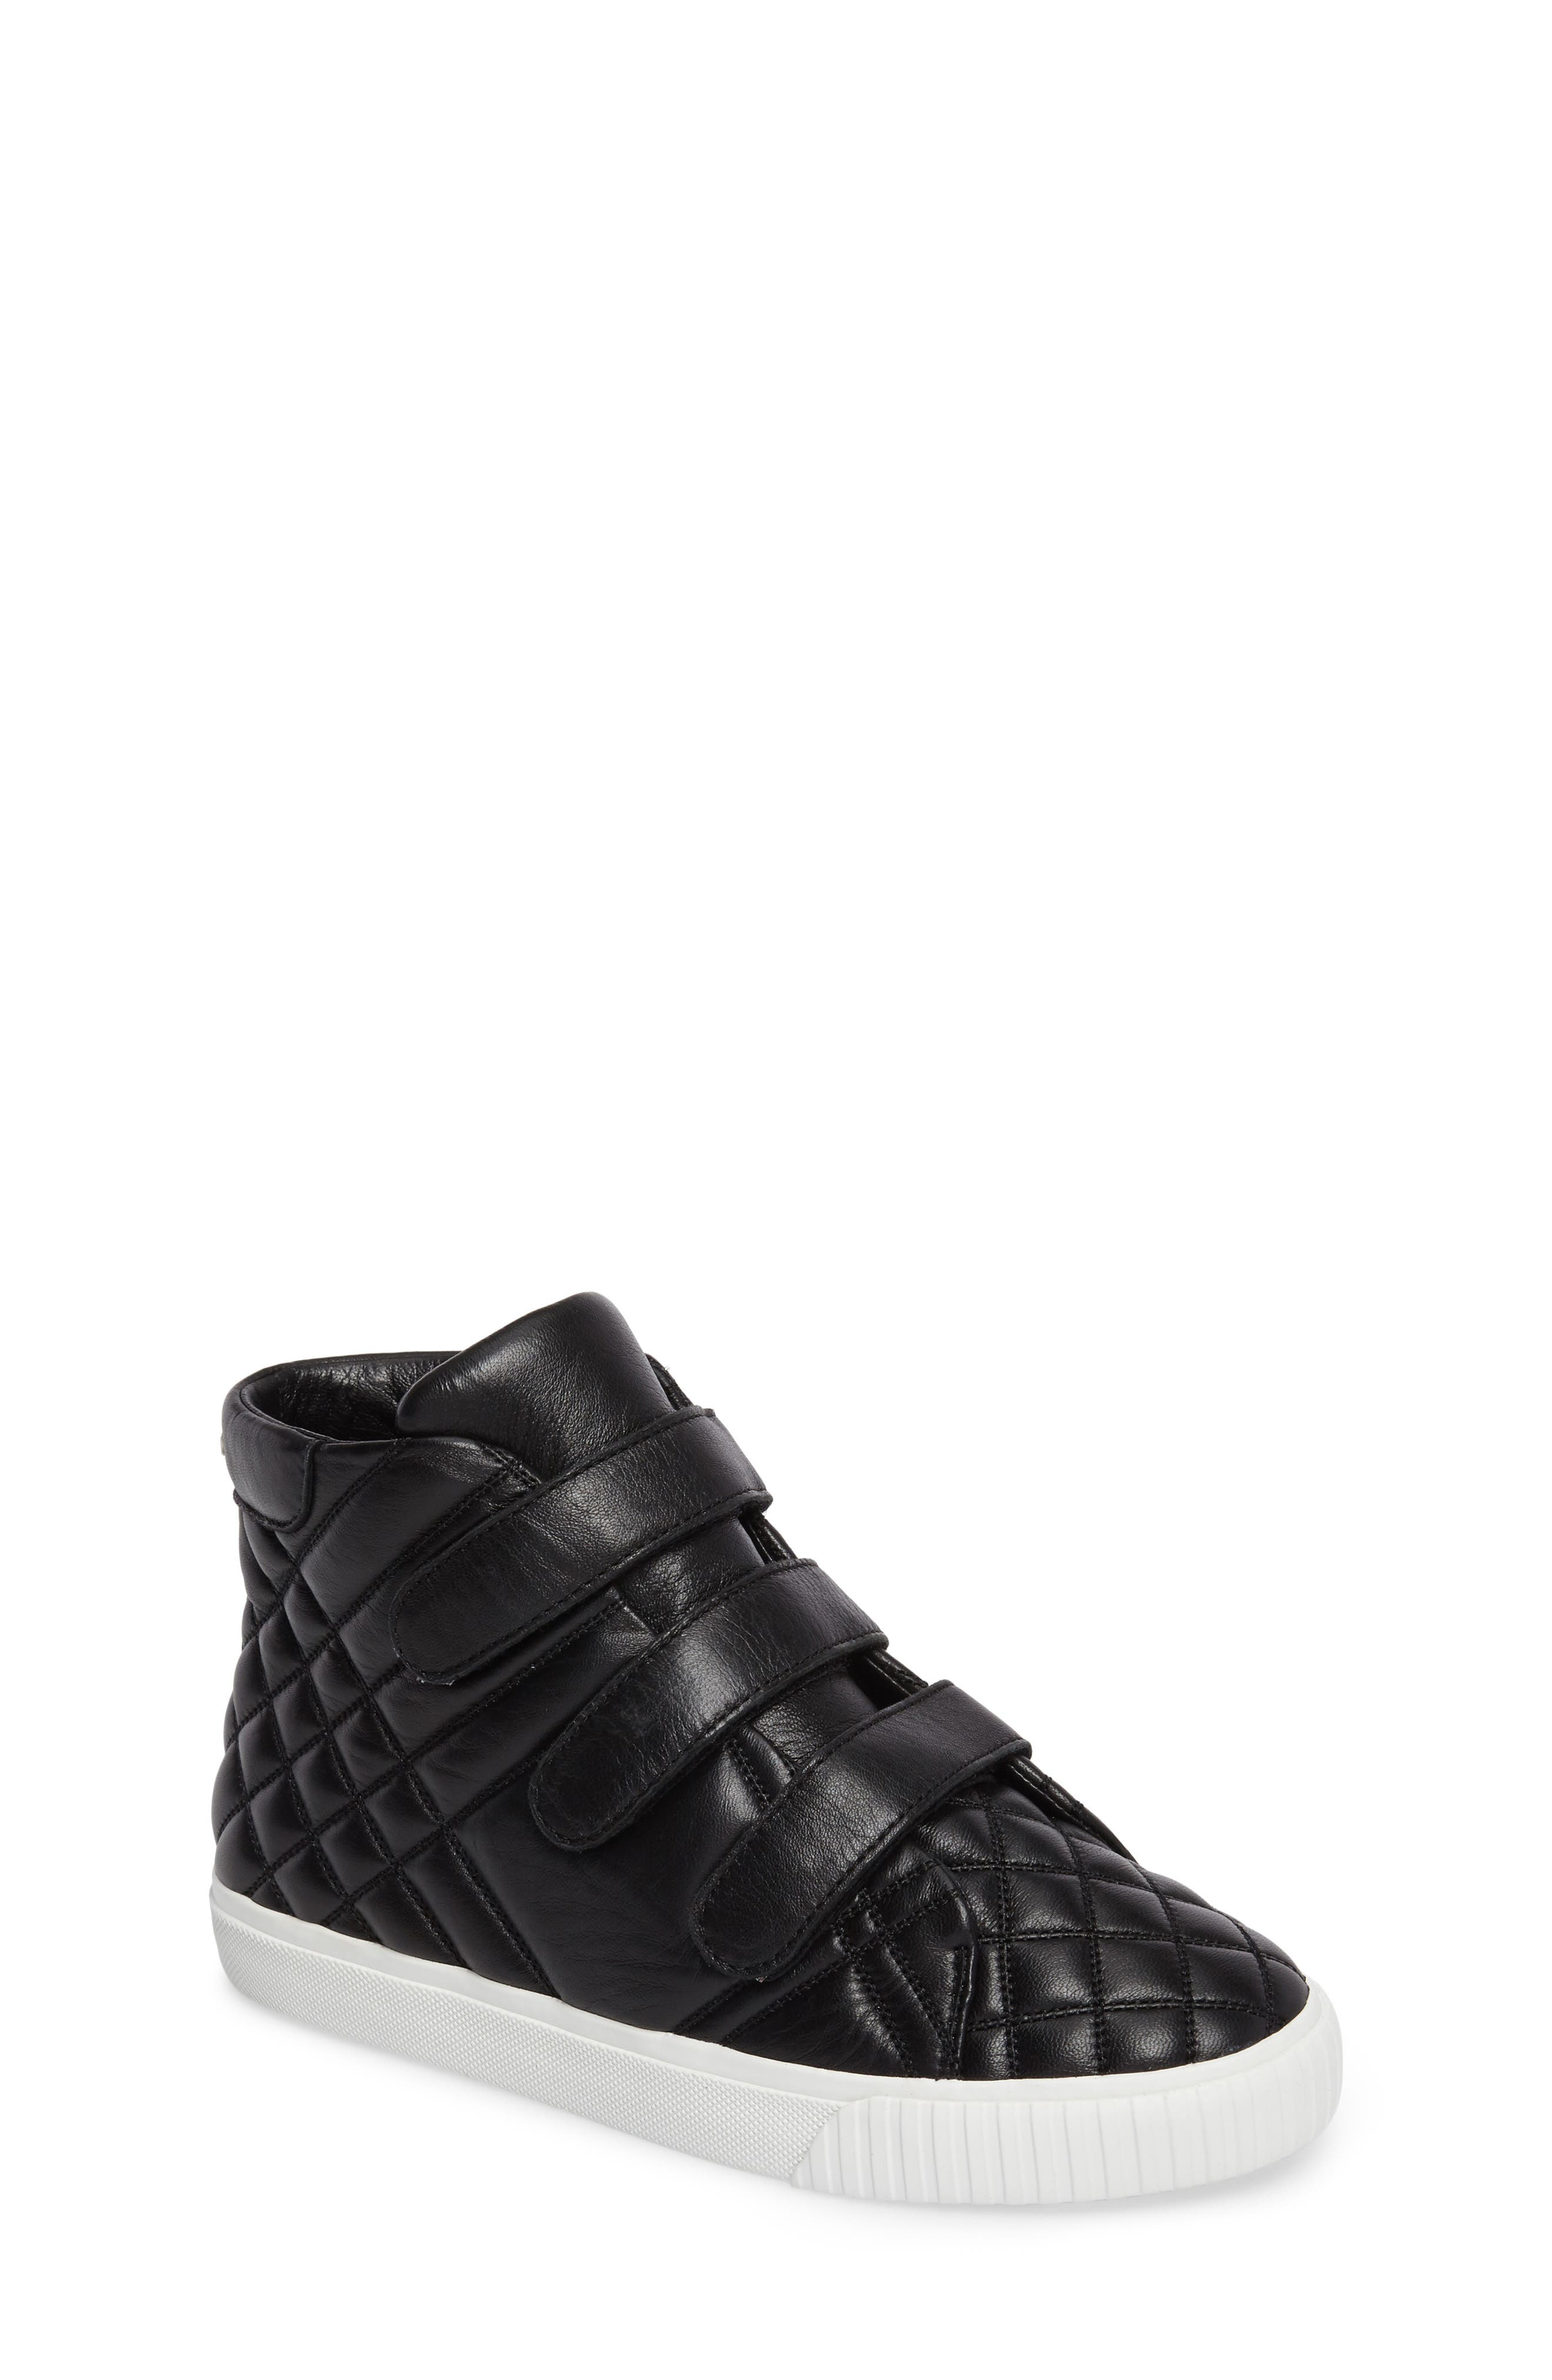 Sturrock Quilted High Top Sneaker,                             Main thumbnail 1, color,                             001